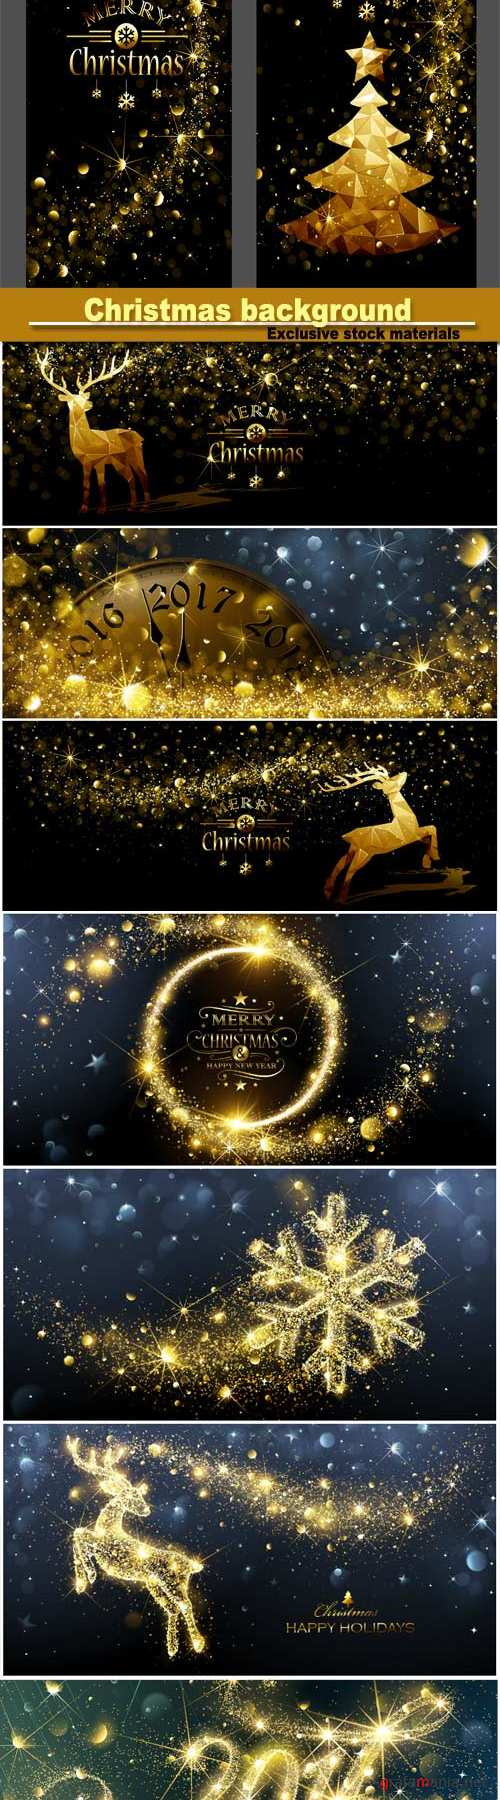 Beautiful Christmas background with glowing elements, deer, tree